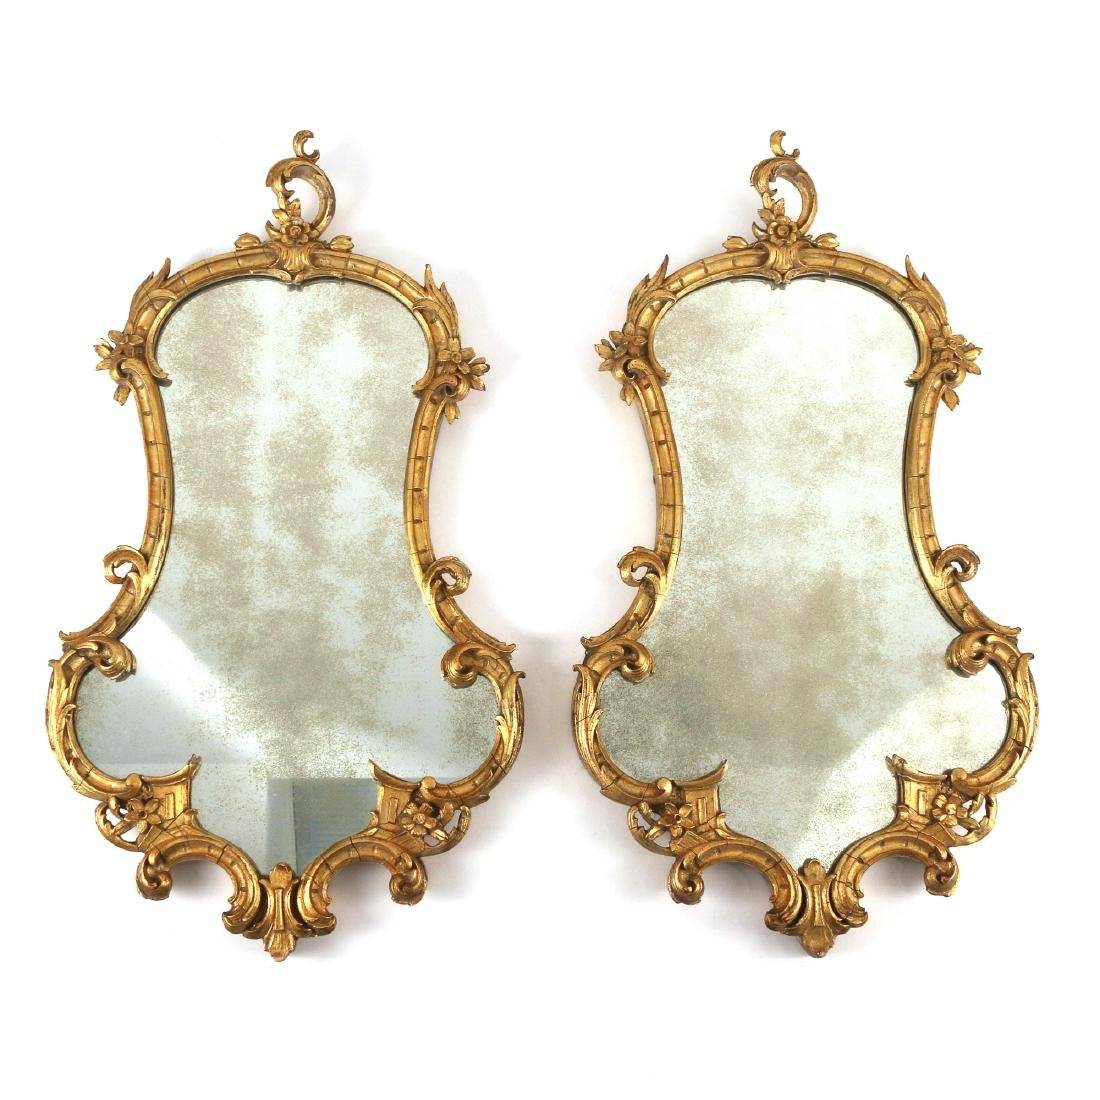 PAIR CHINESE CHIPPENDALE STYLE GILT MIRRORS